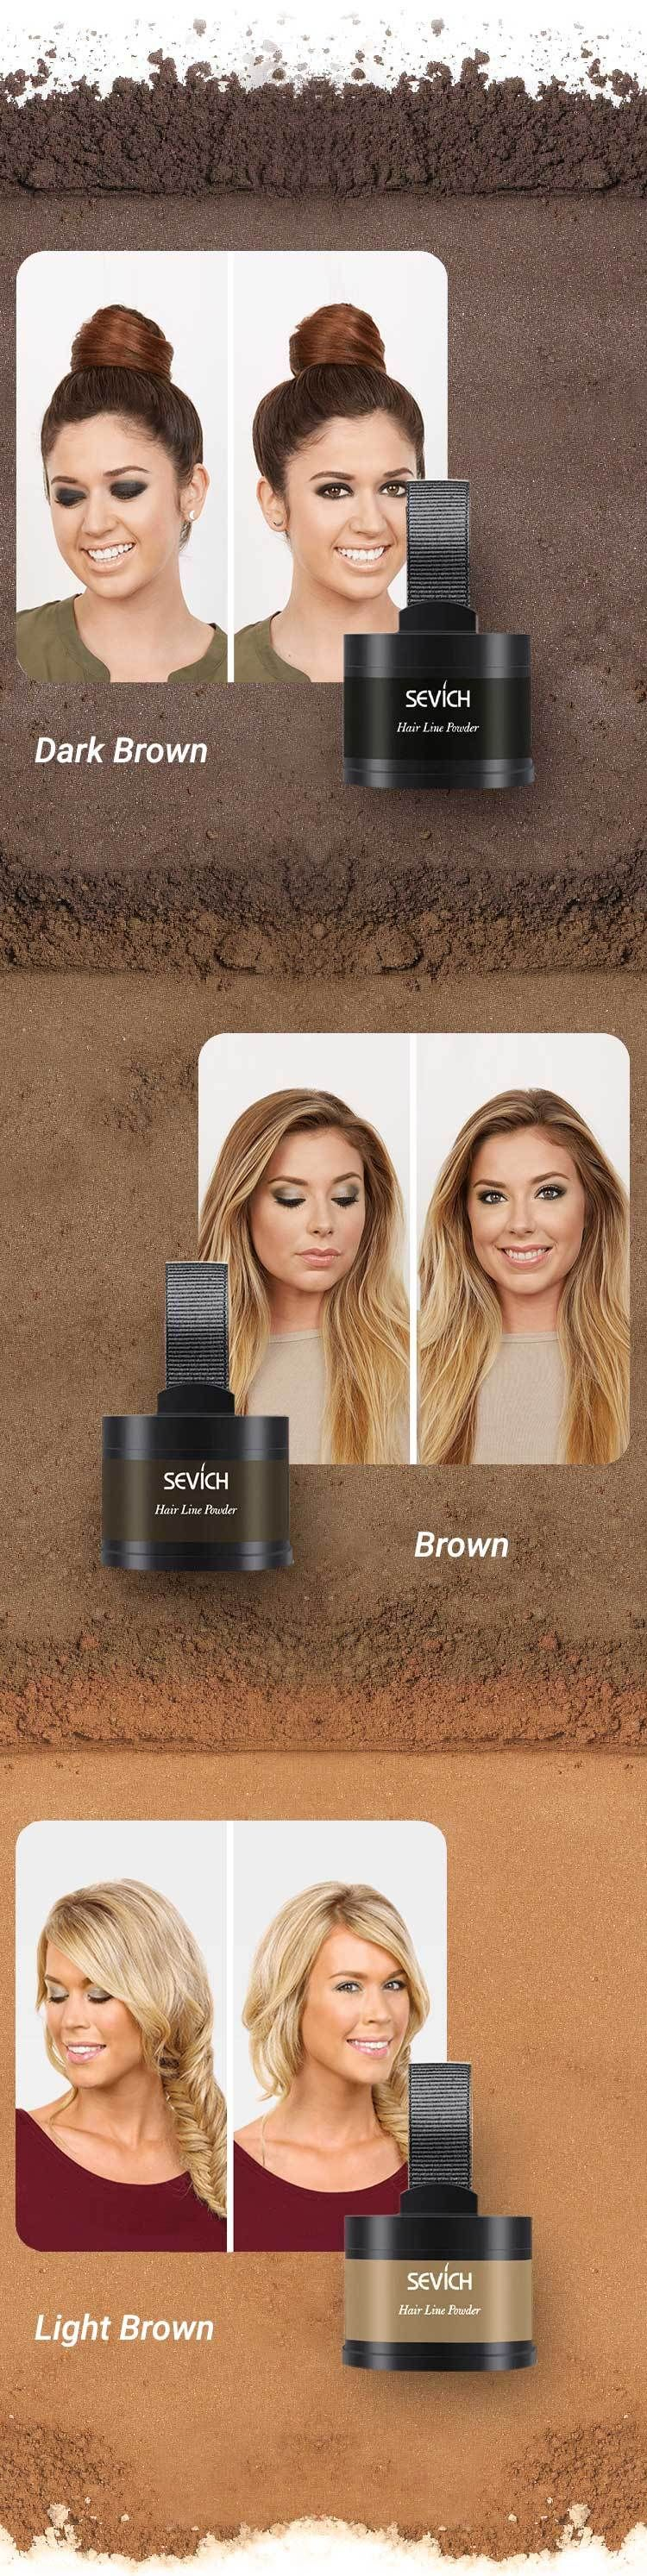 Sevich Hairline Root Touch Up Powder Glamtouche Root Touch Up Powder Root Touch Up Root Touch